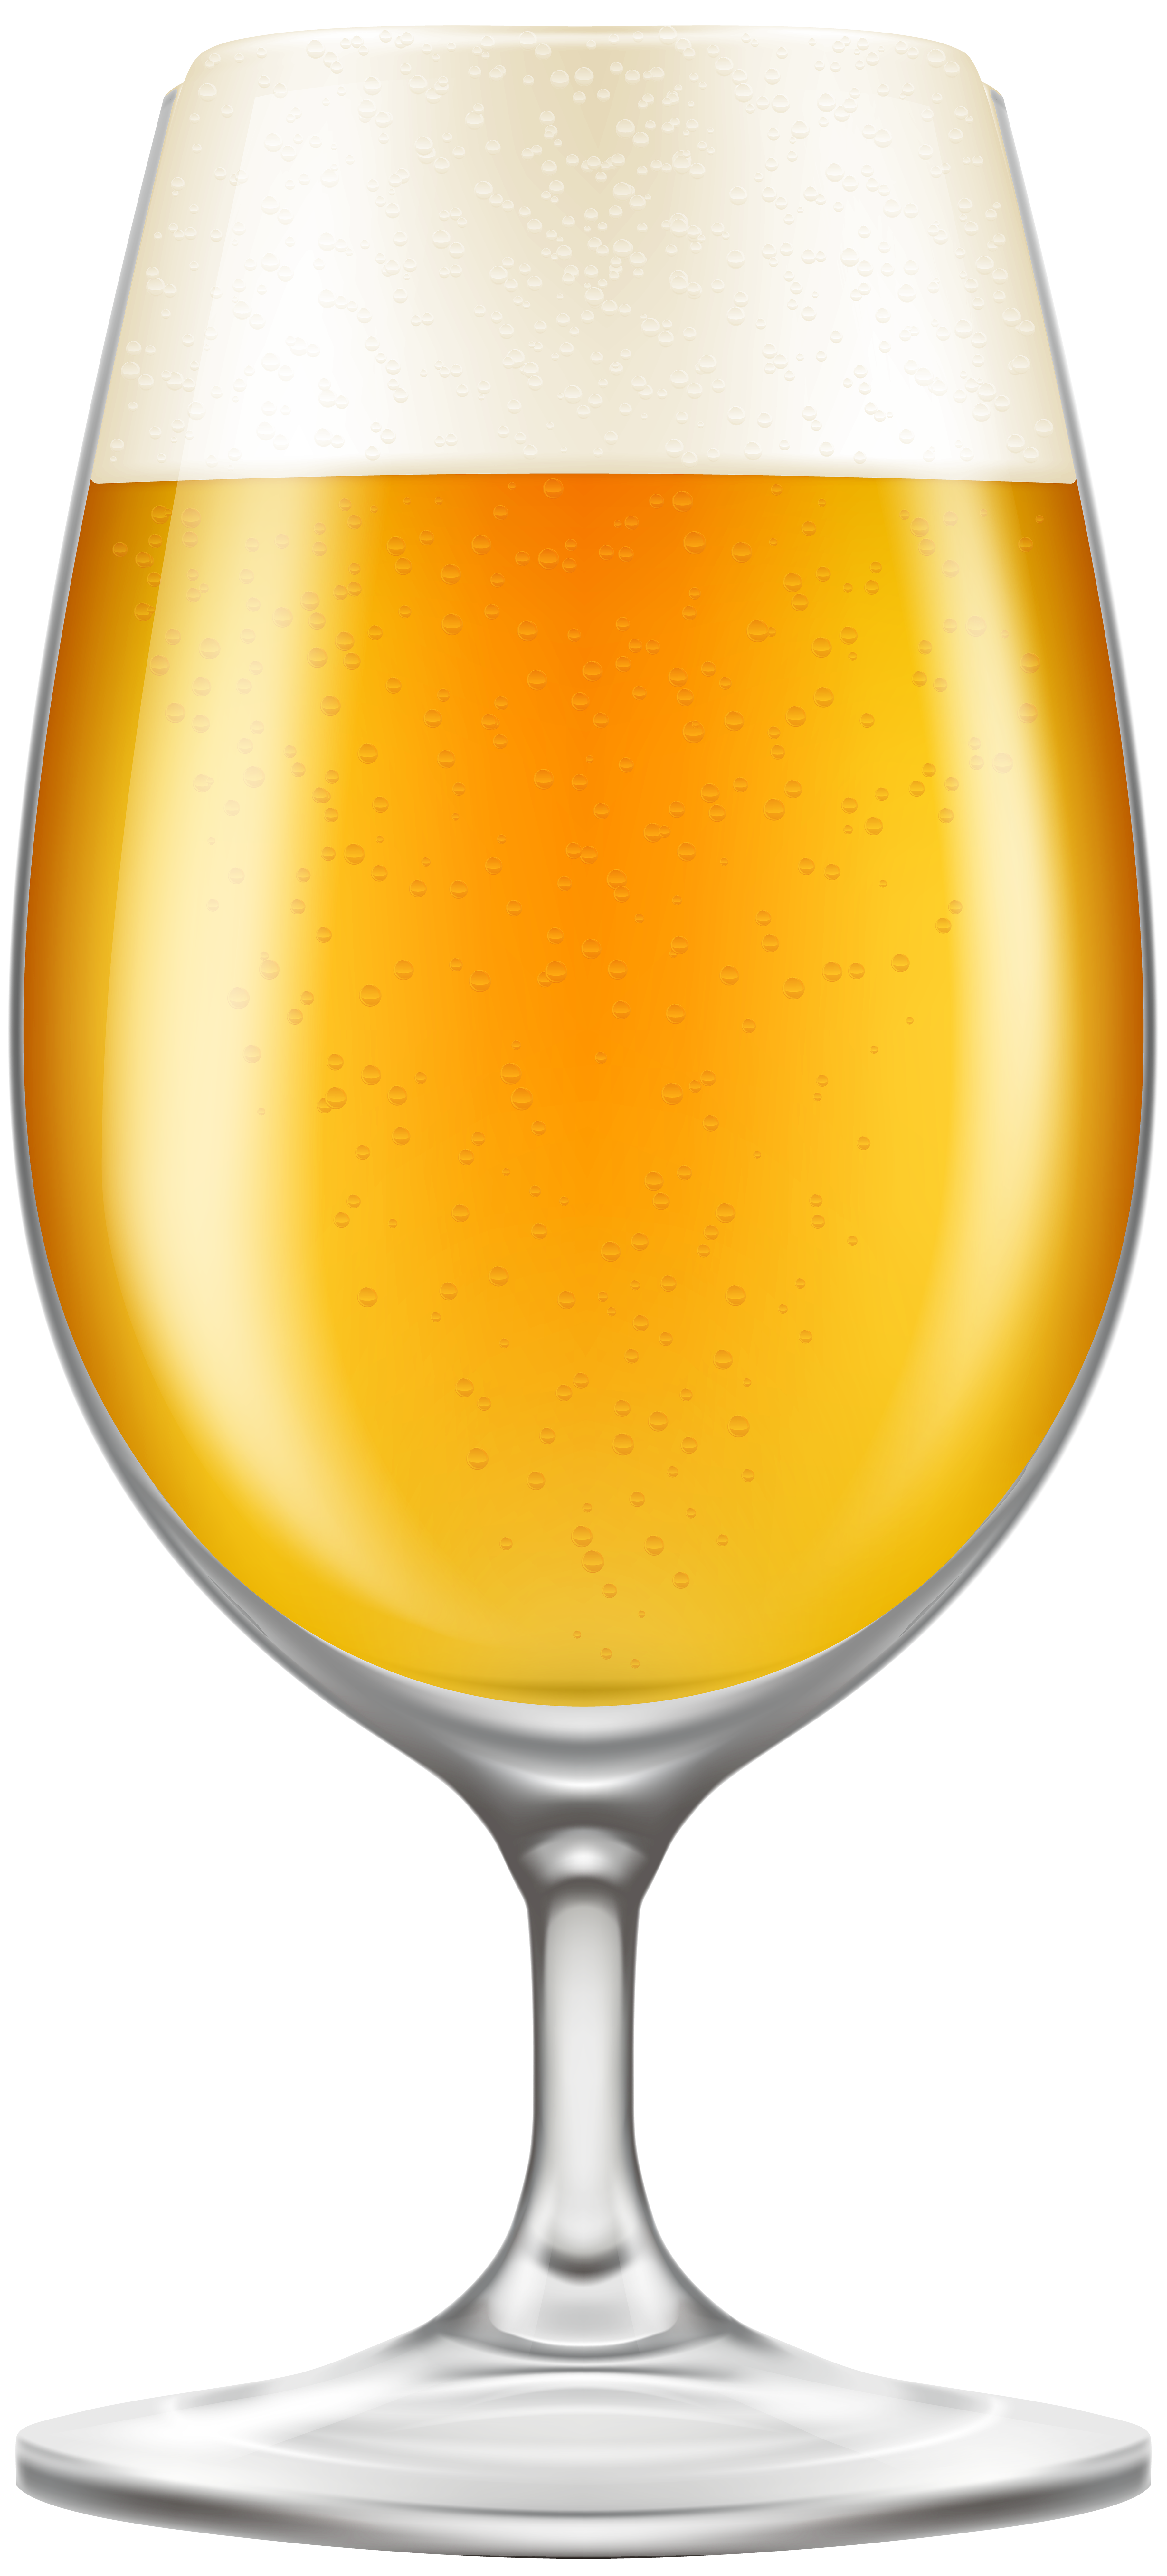 Cocktail clipart beer wine. Glass transparent png clip